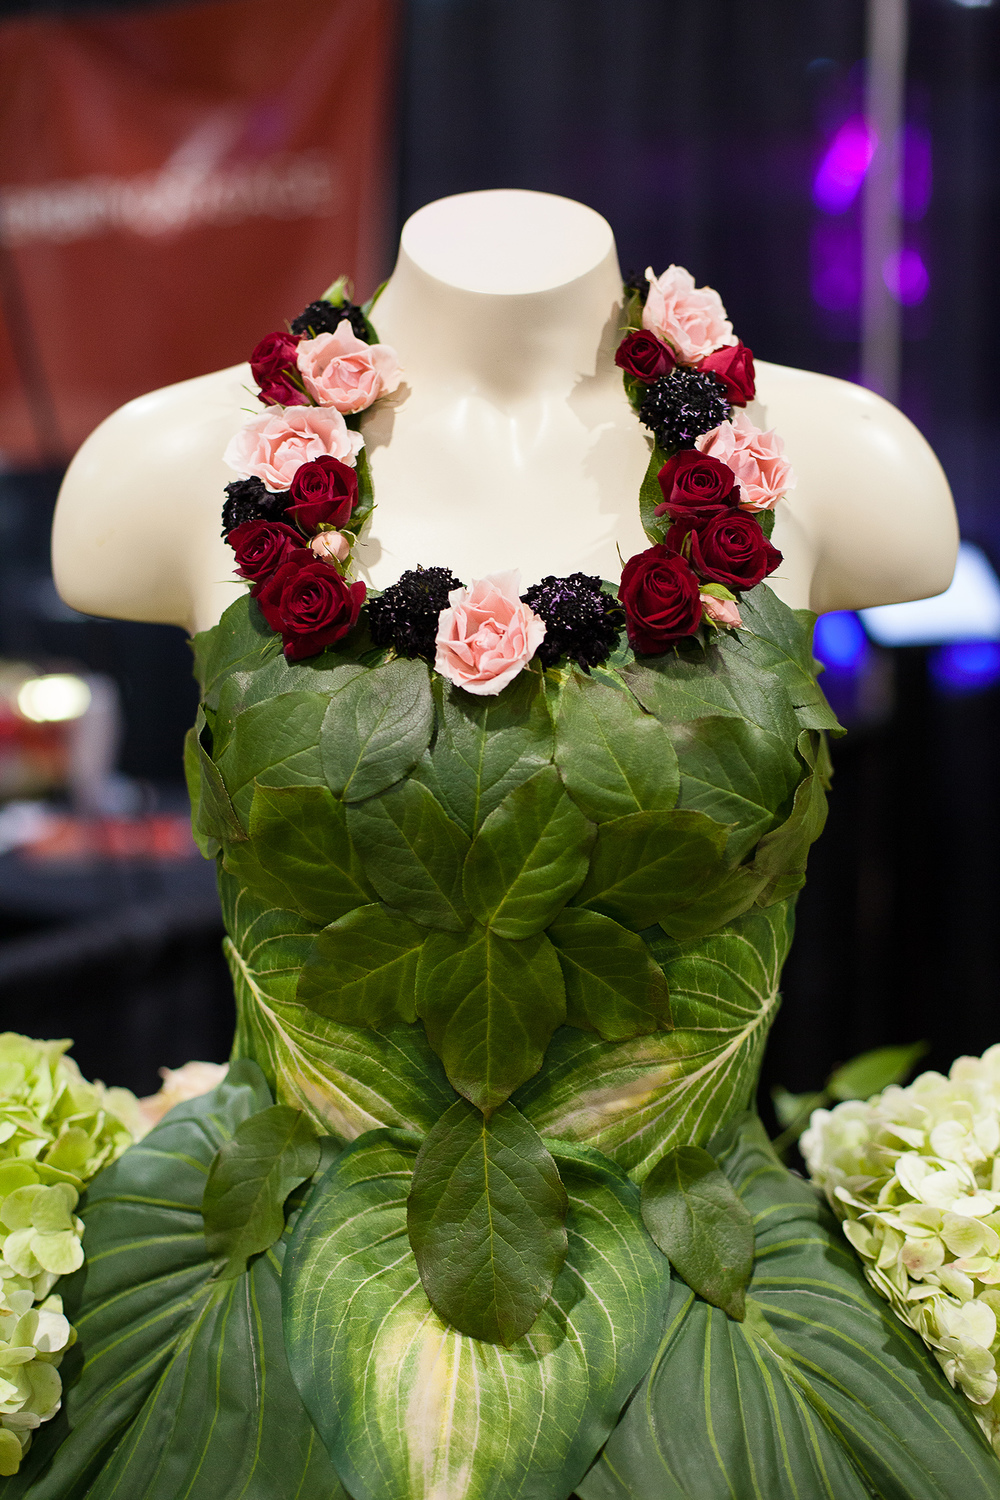 Dress Made of Fig Leaves